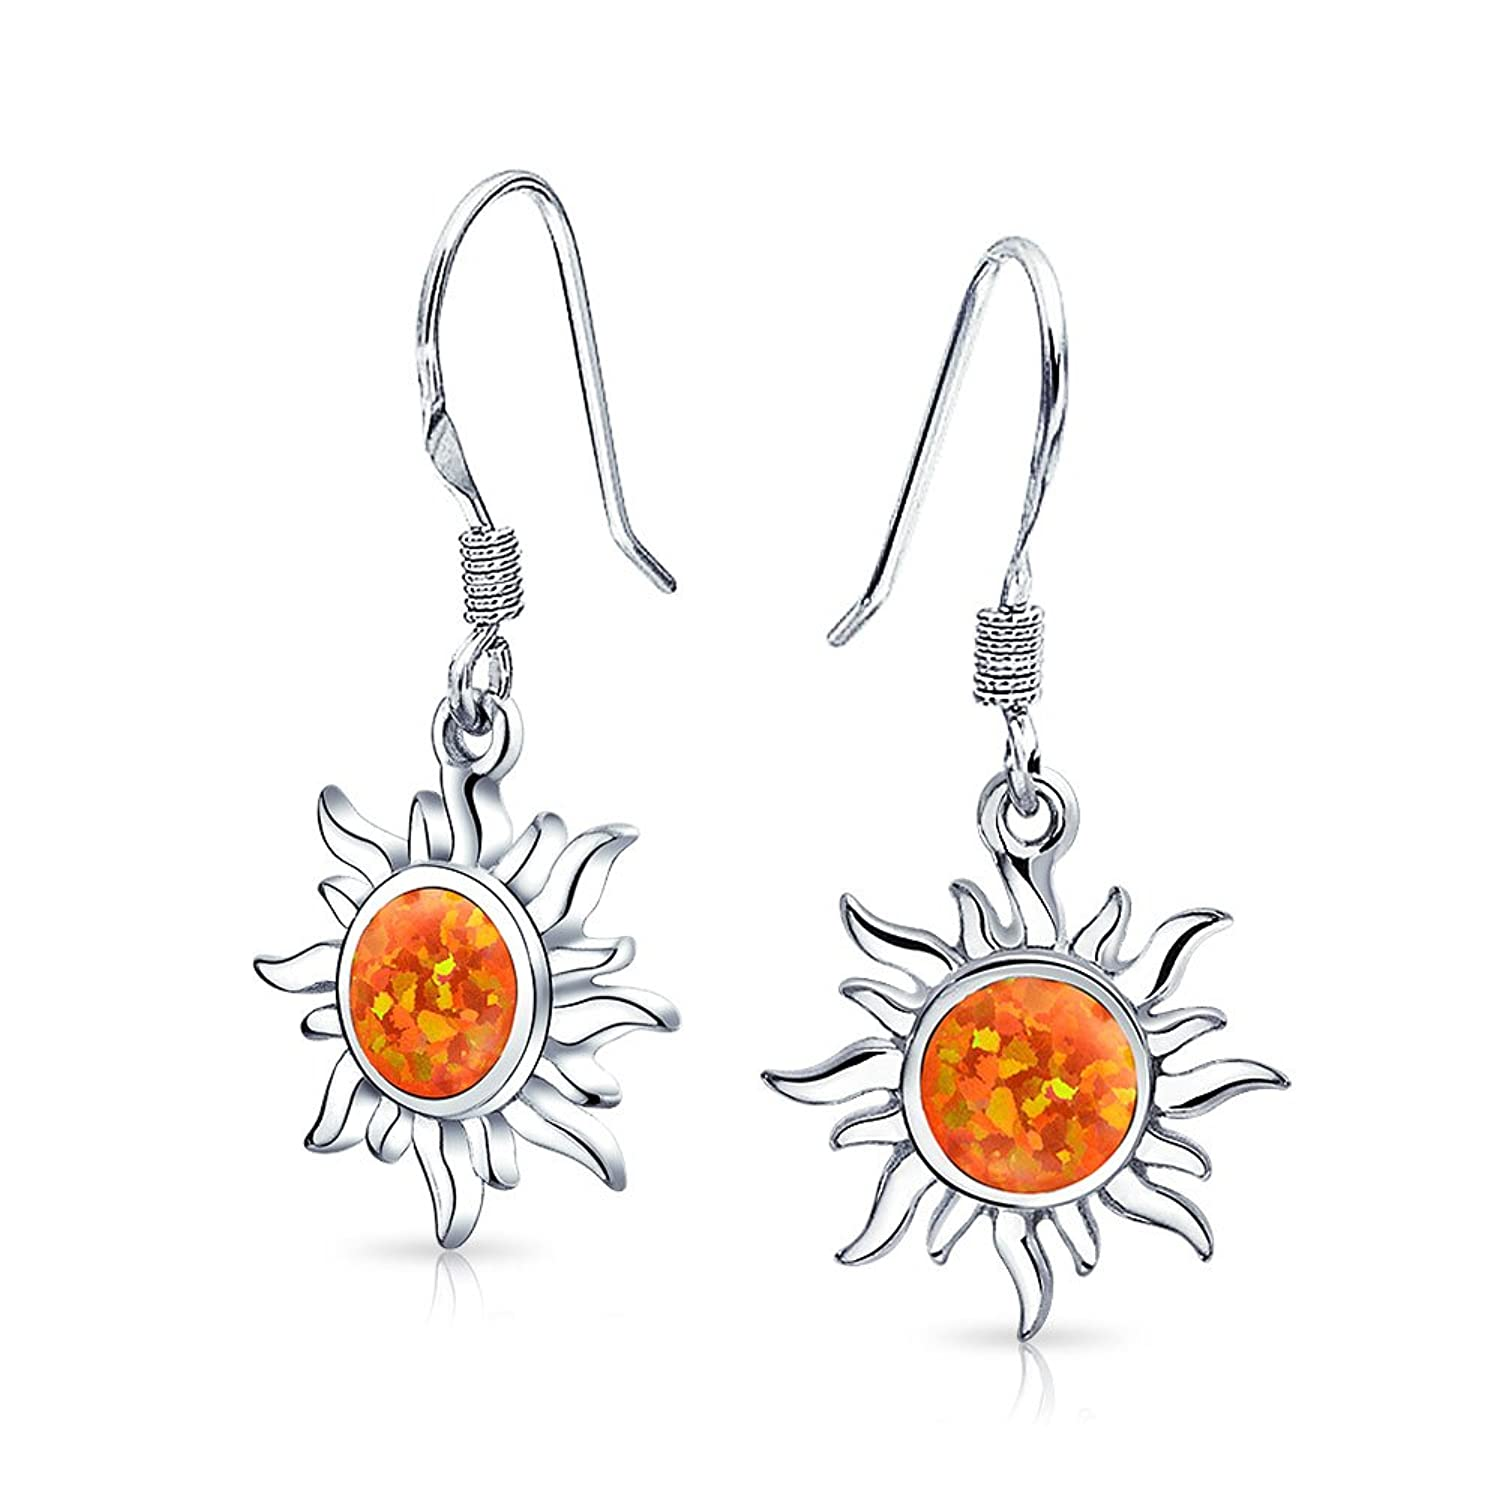 Bling Jewelry .925 Sterling Silver Synthetic Orange Fire Opal Sun Dangle Earrings Rhodium Plated